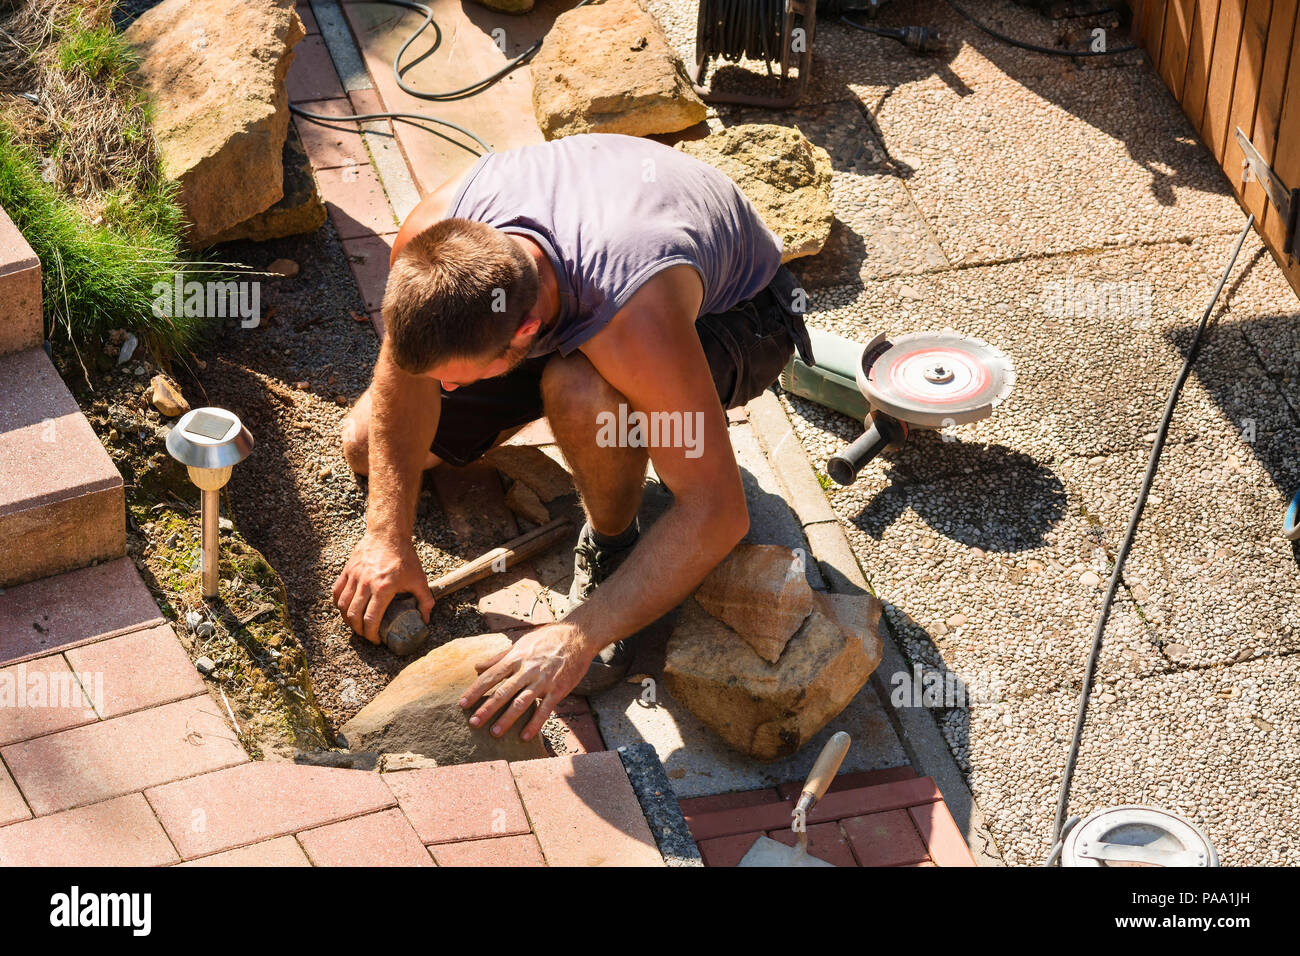 Man Build a dry wall in the garden. In the background, various tools. - Stock Image